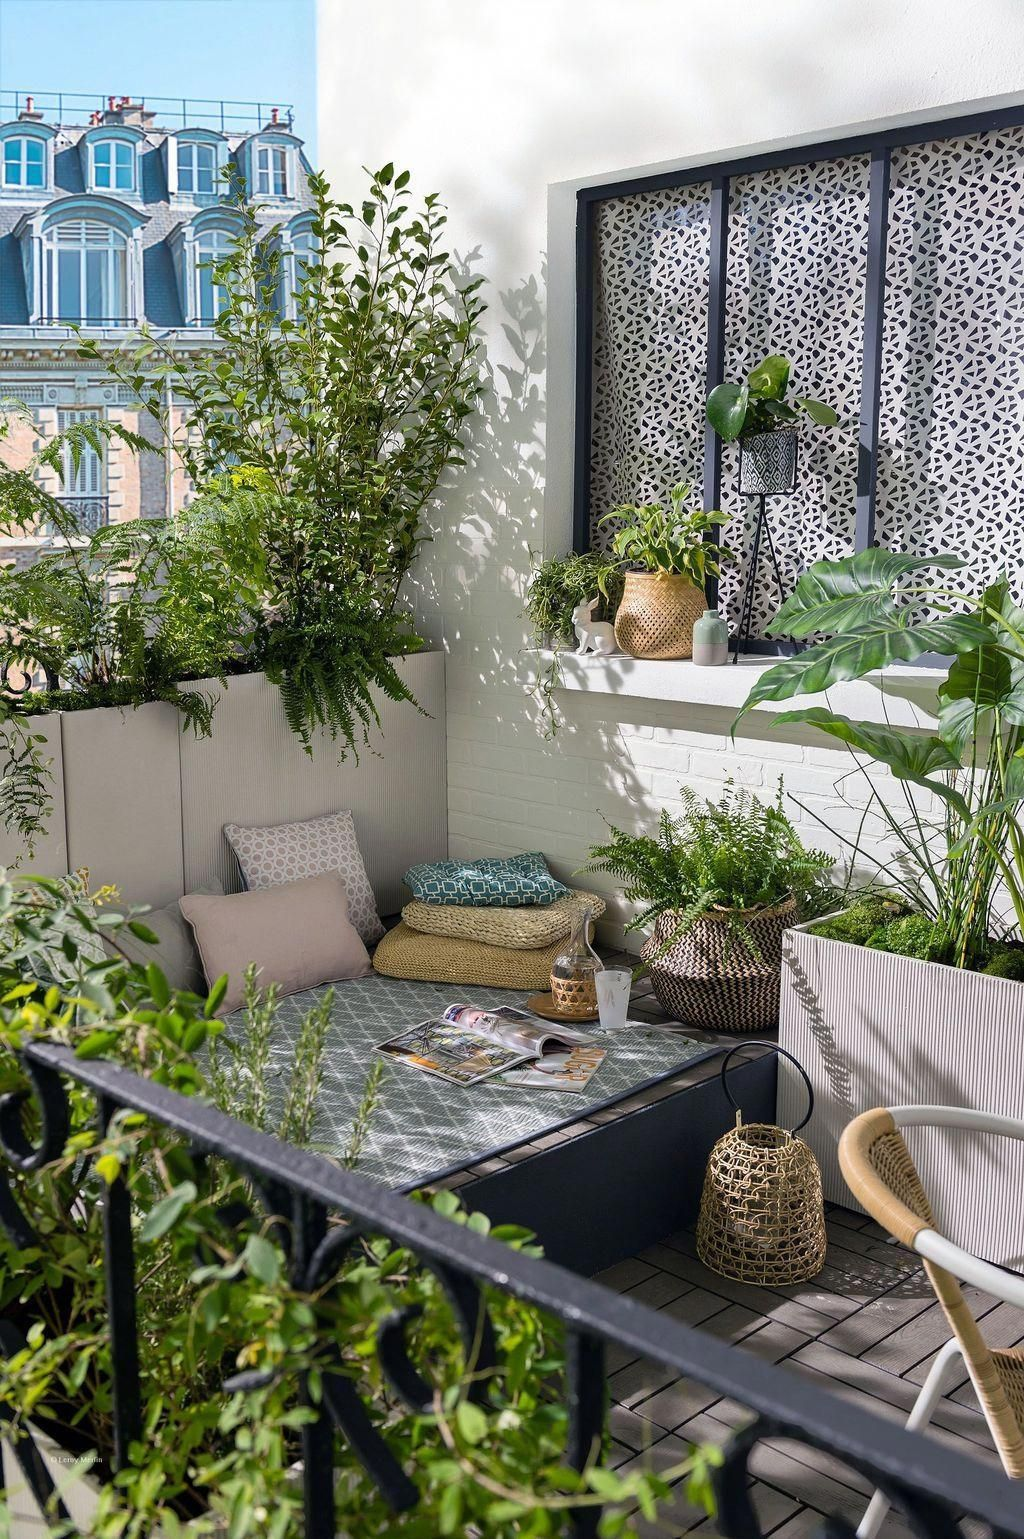 43 Inspiring Ideas For Designing Your Small City Balcony Space Transform Your Small Outdoor Area I Small Balcony Design Apartment Balcony Garden Balcony Decor